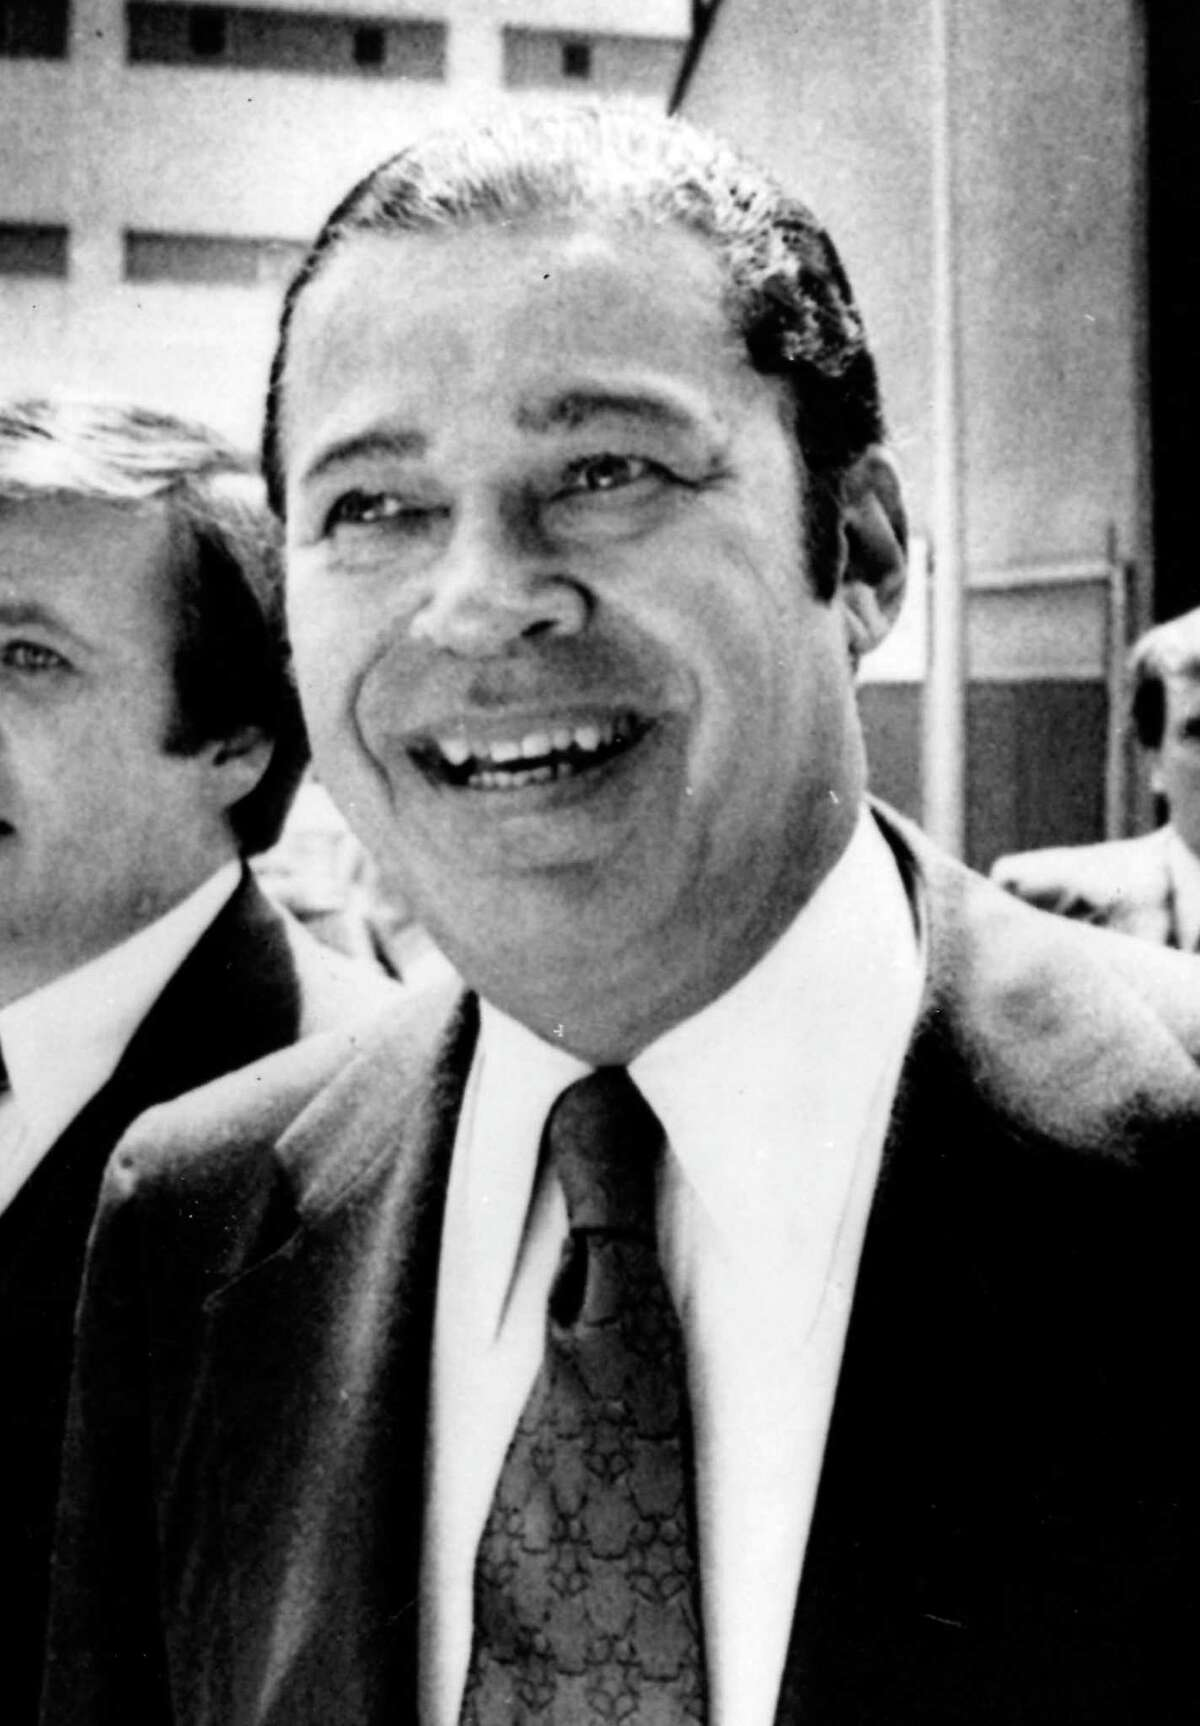 File- In this June 7, 1978 file photo, Sen. Edward W. Brooke, R-Mass., is shown in Cambridge, Mass. Brooke, the first black to win popular election to the Senate, has died. He was 95. Ralph Neas, a former aide, said Brooke died Saturday, Jan. 3, 2015, of natural causes at his Coral Gables, Fla, home. (AP Photo/file)